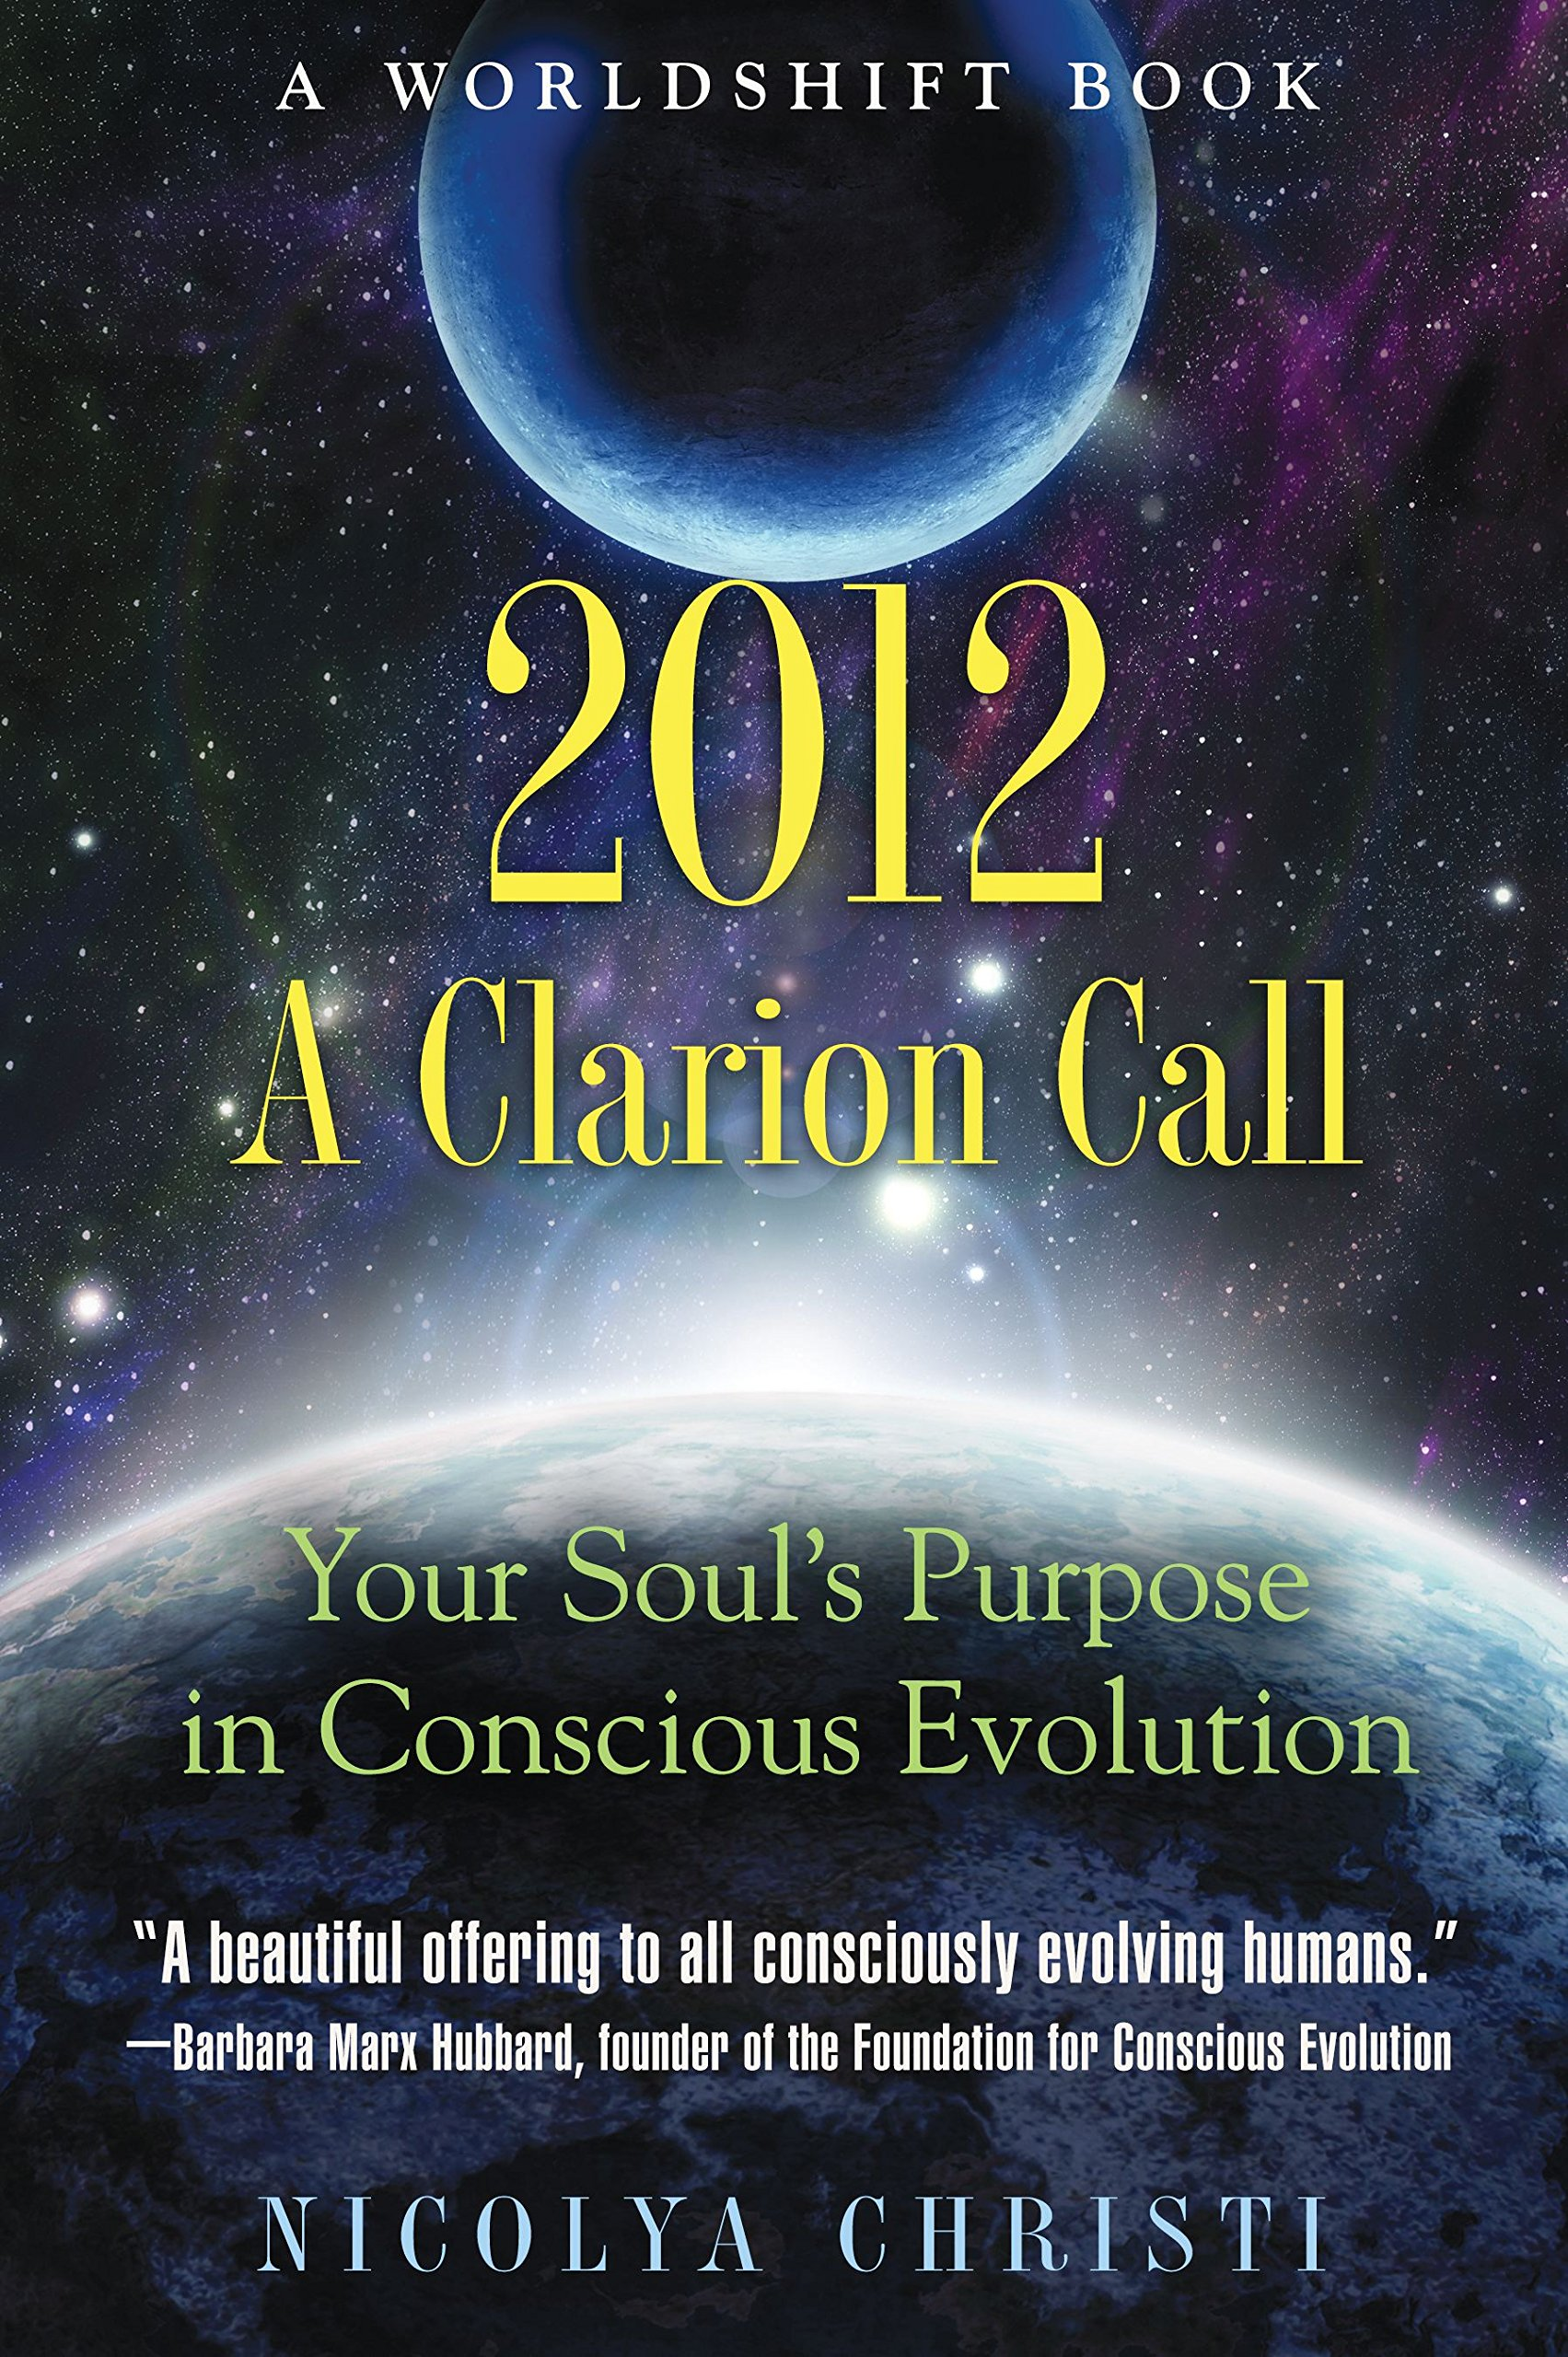 2012: A Clarion Call: Your Soul's Purpose in Conscious Evolution (Worldshift Books) pdf